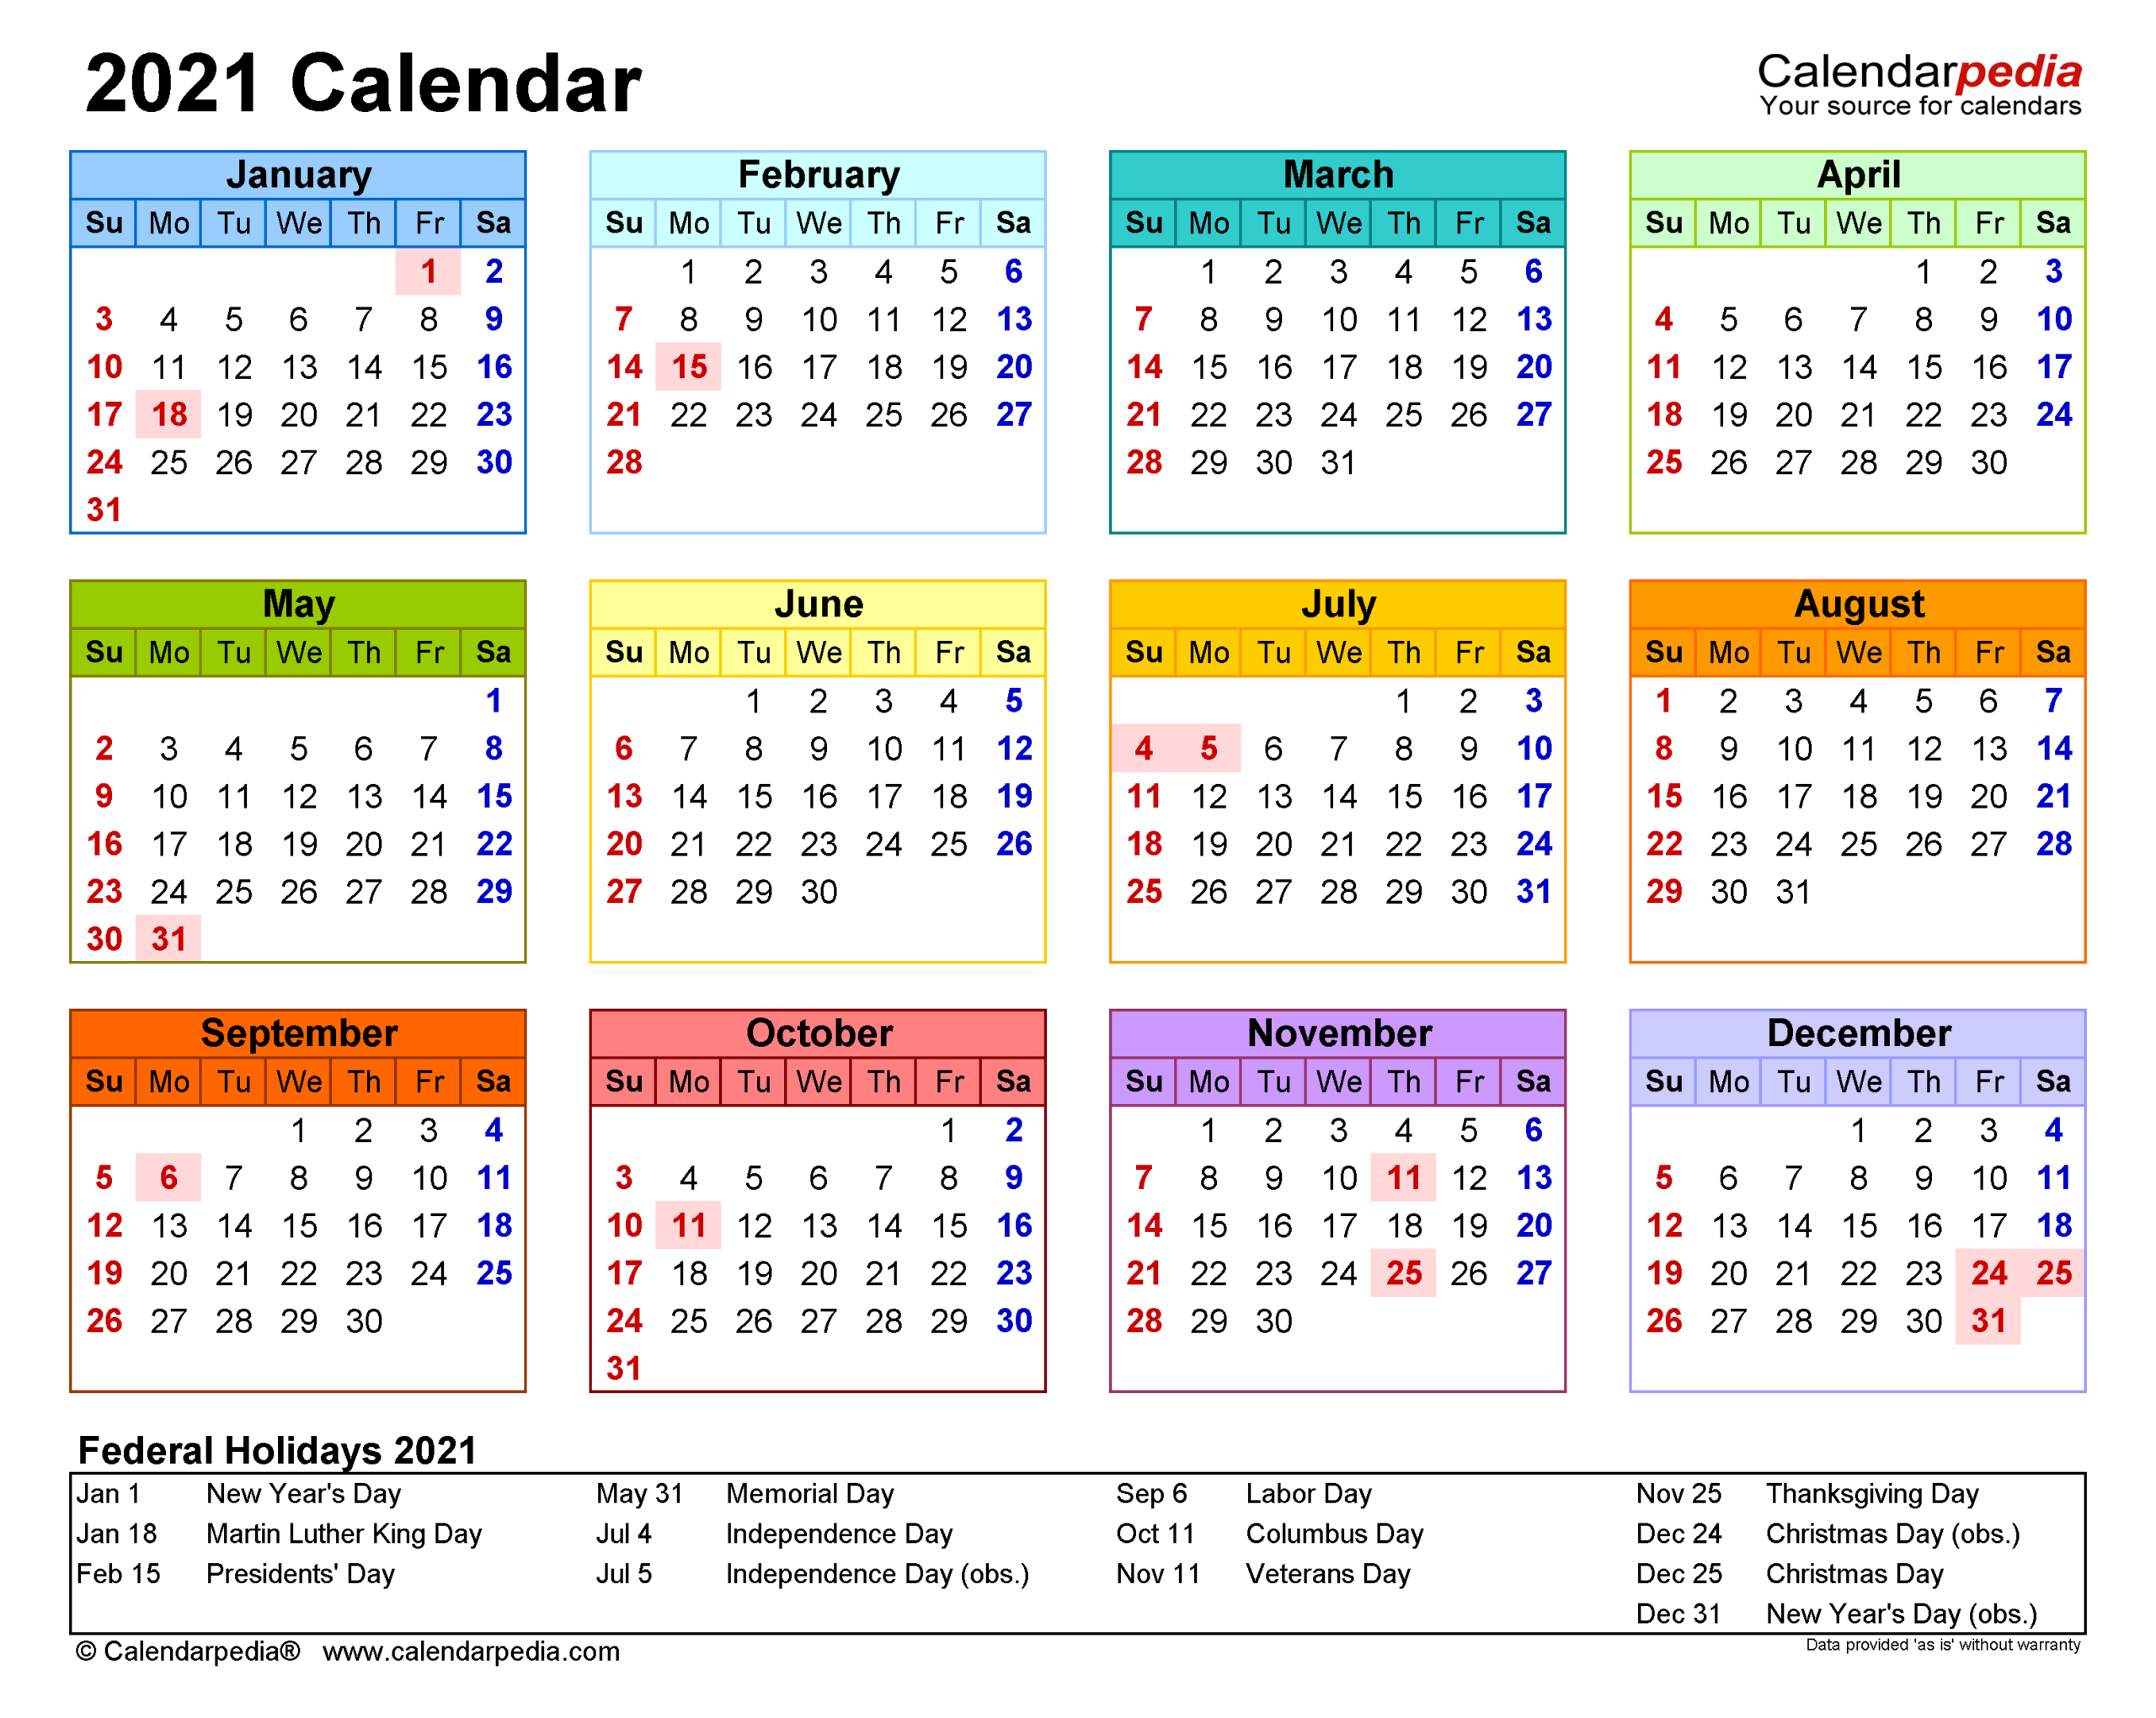 2021 Calendar - Free Printable Excel Templates - Calendarpedia throughout Free Printable Pocket Calendar 2021